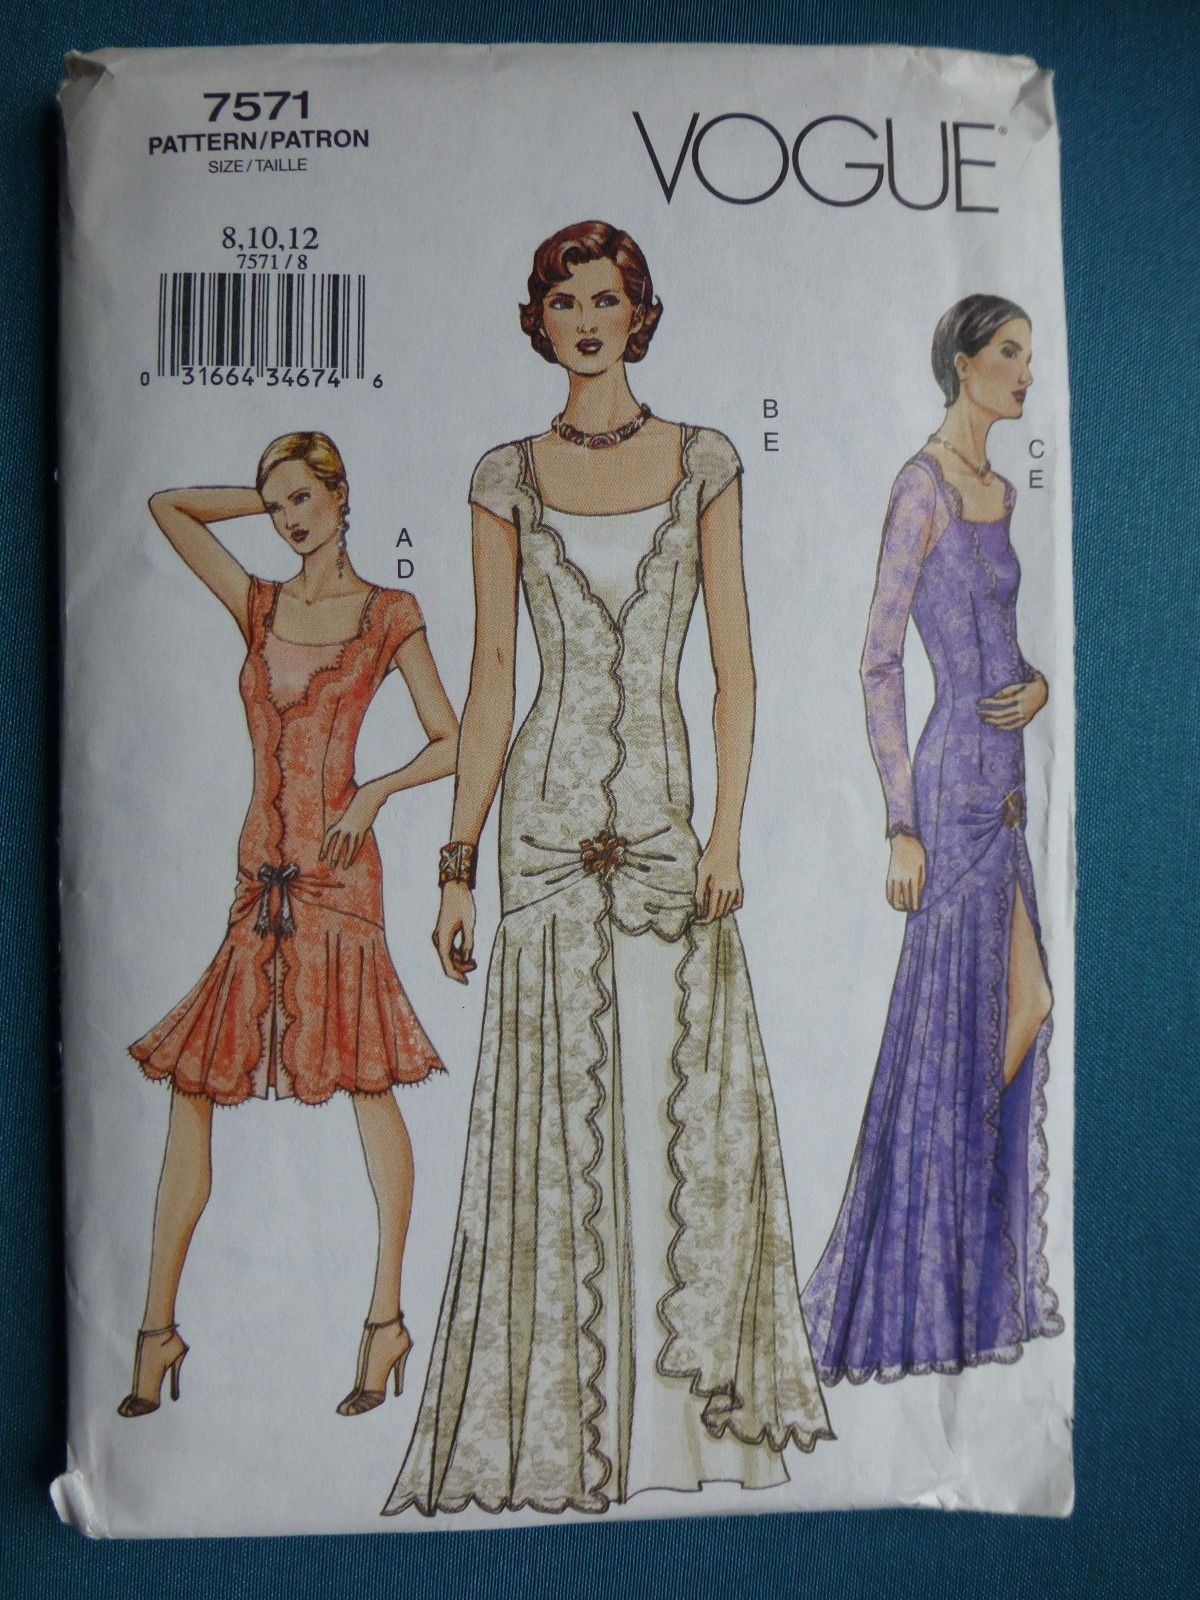 Bildergebnis Für Schnittmuster Gatsby Vogue Pattern 7571 Ed Evening Dress Very Great